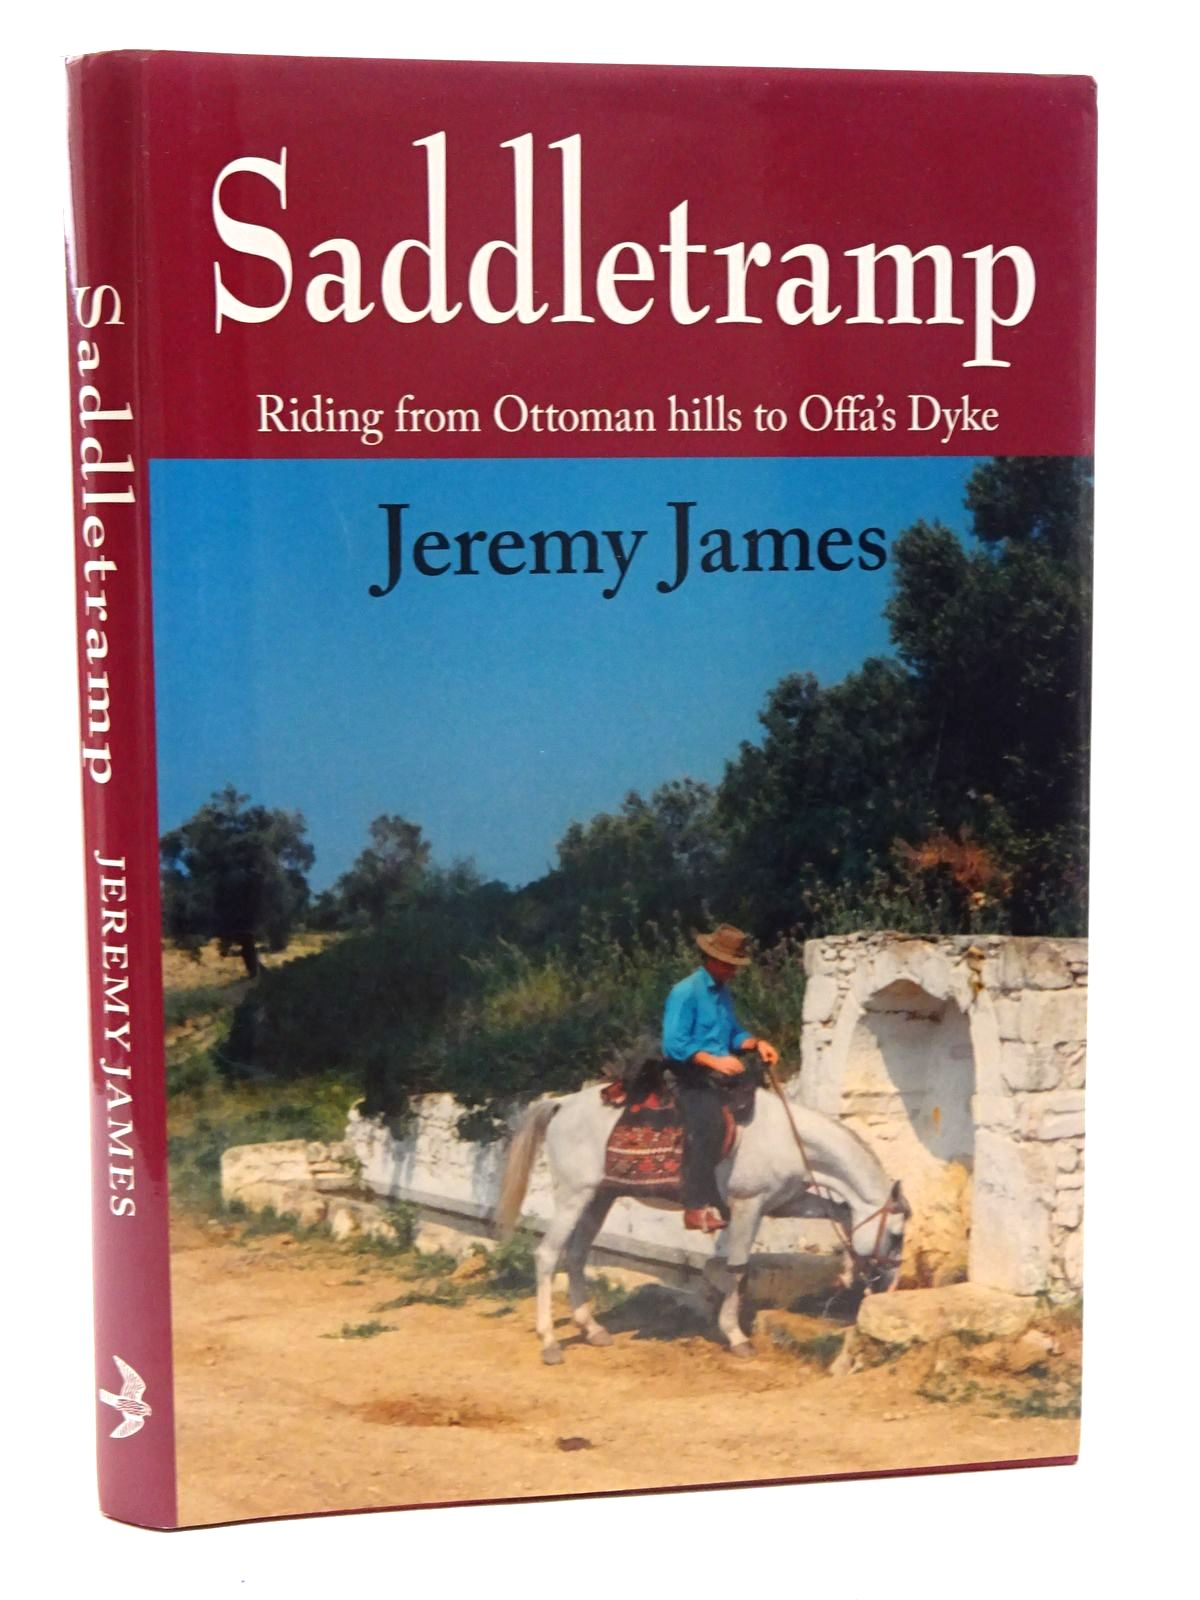 Photo of SADDLETRAMP written by James, Jeremy published by Merlin Unwin Books (STOCK CODE: 2125821)  for sale by Stella & Rose's Books